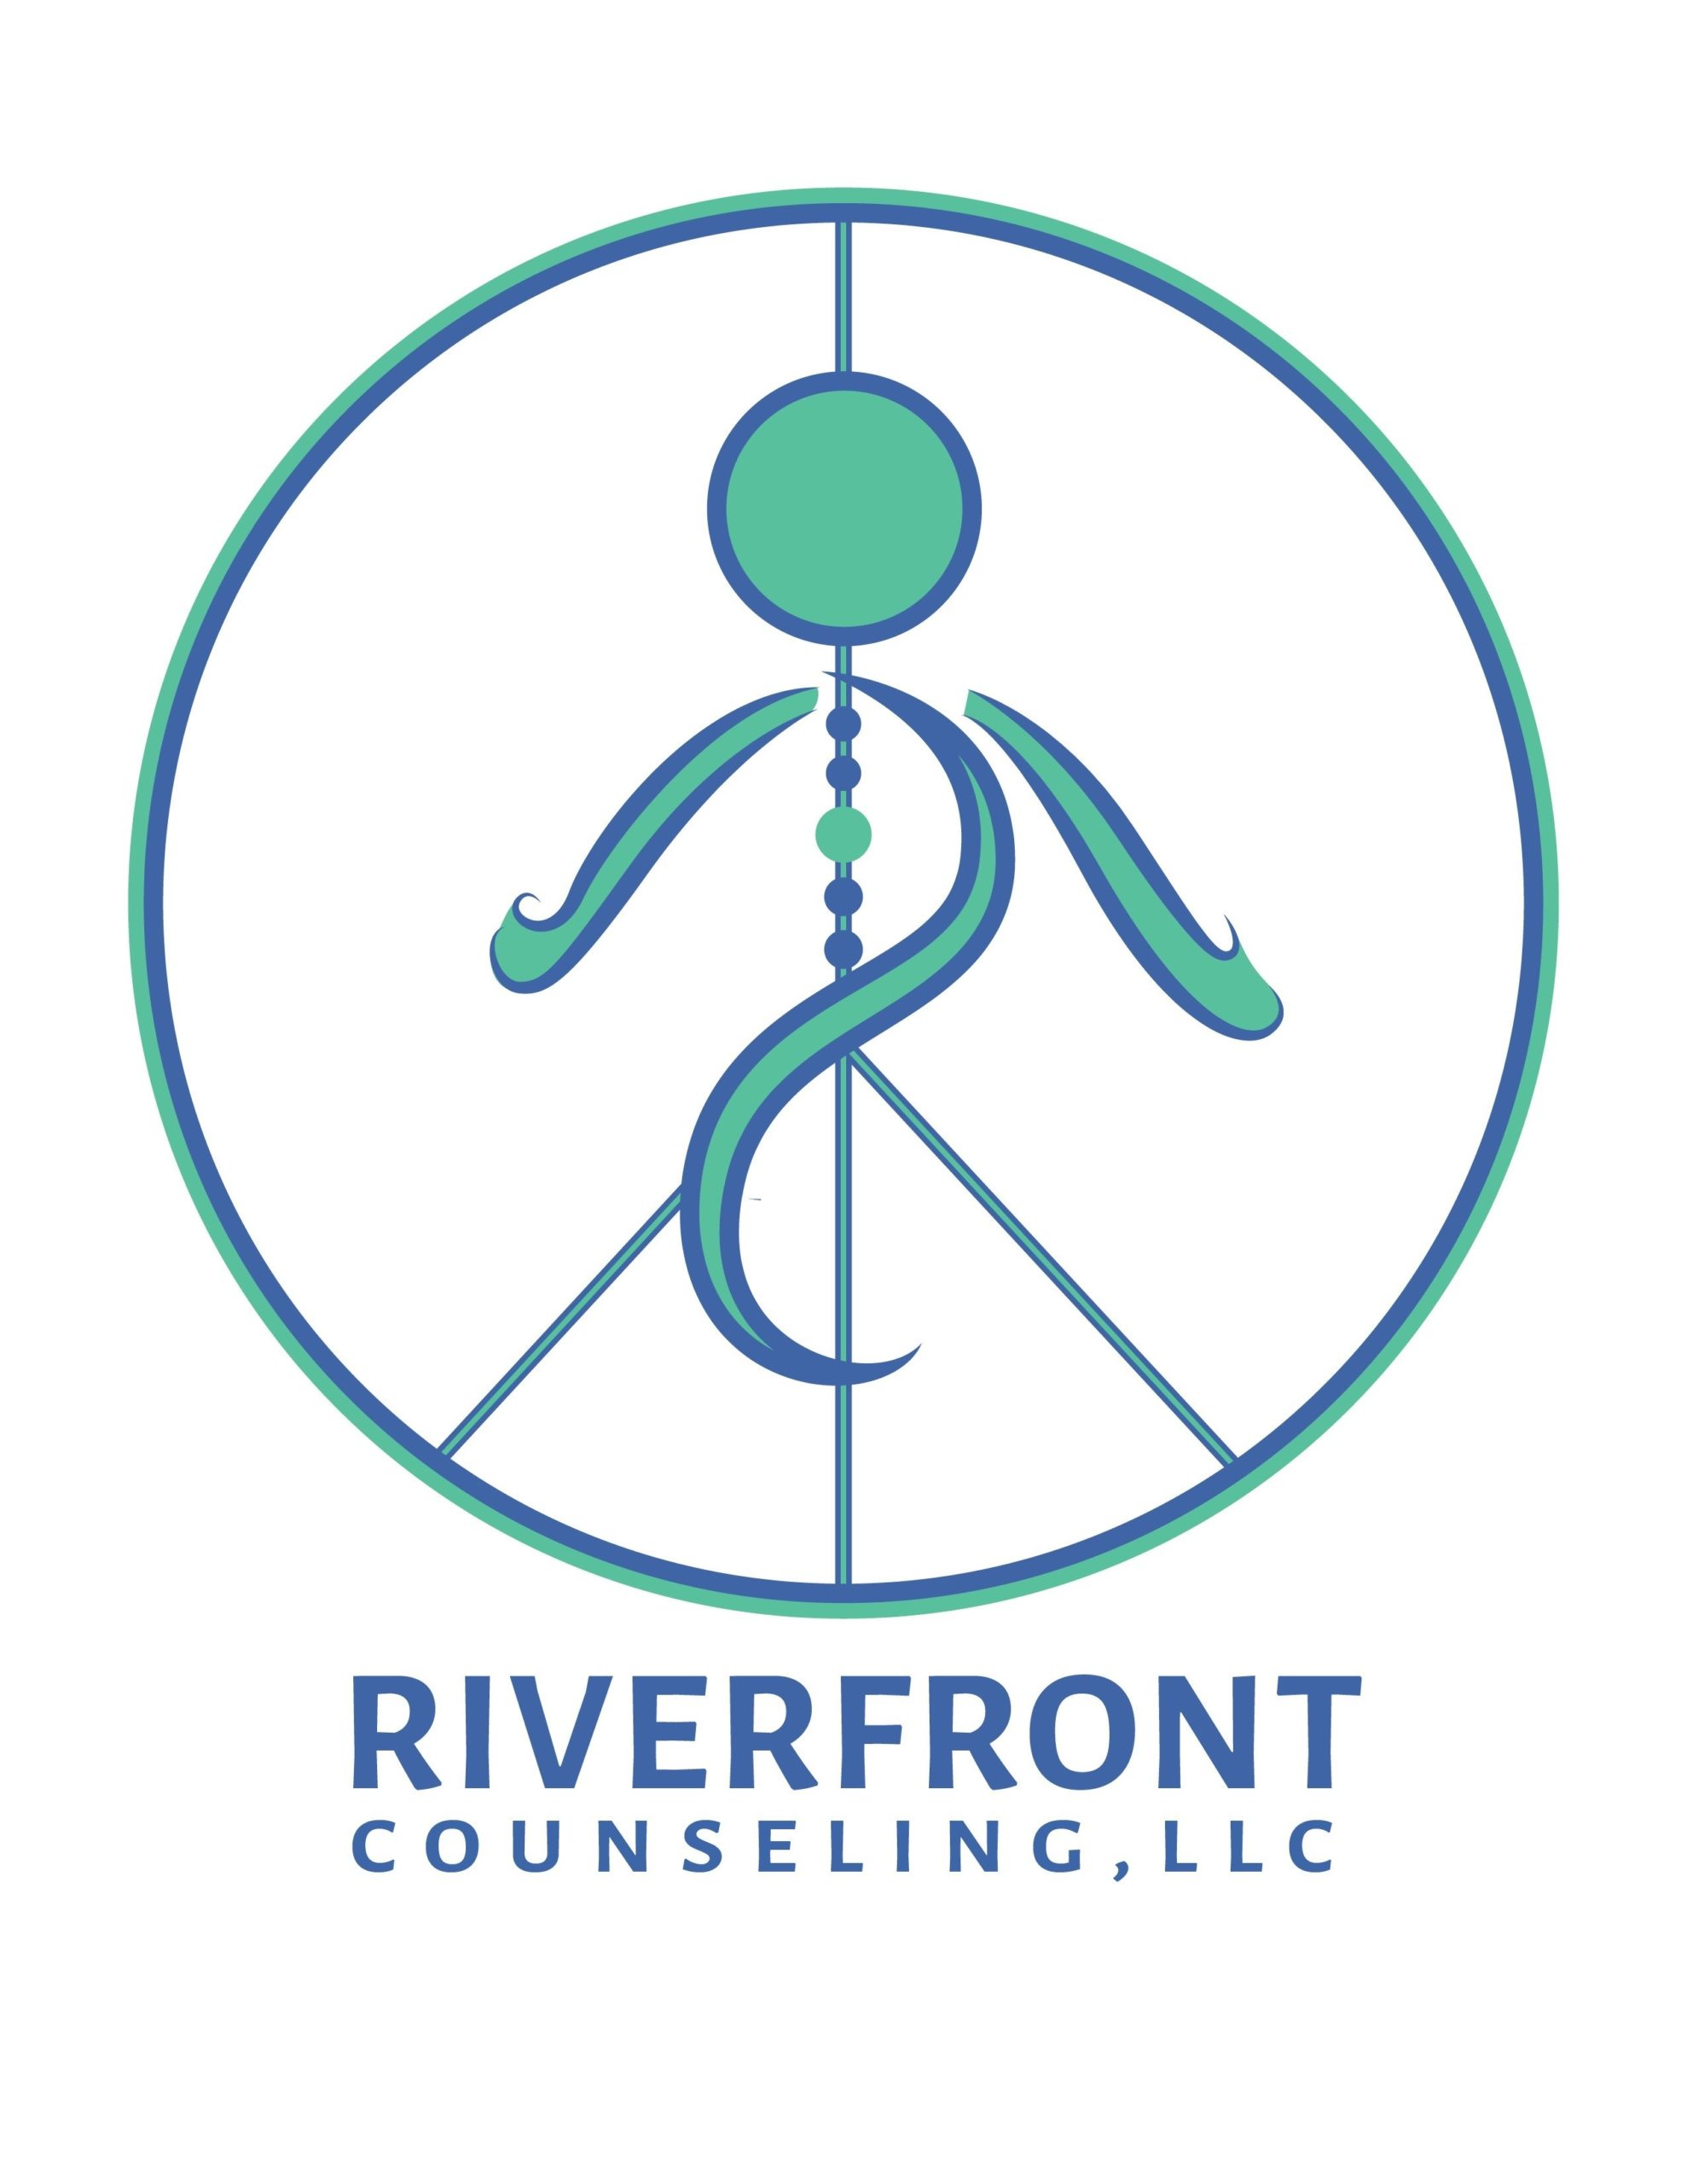 Riverfront Counseling